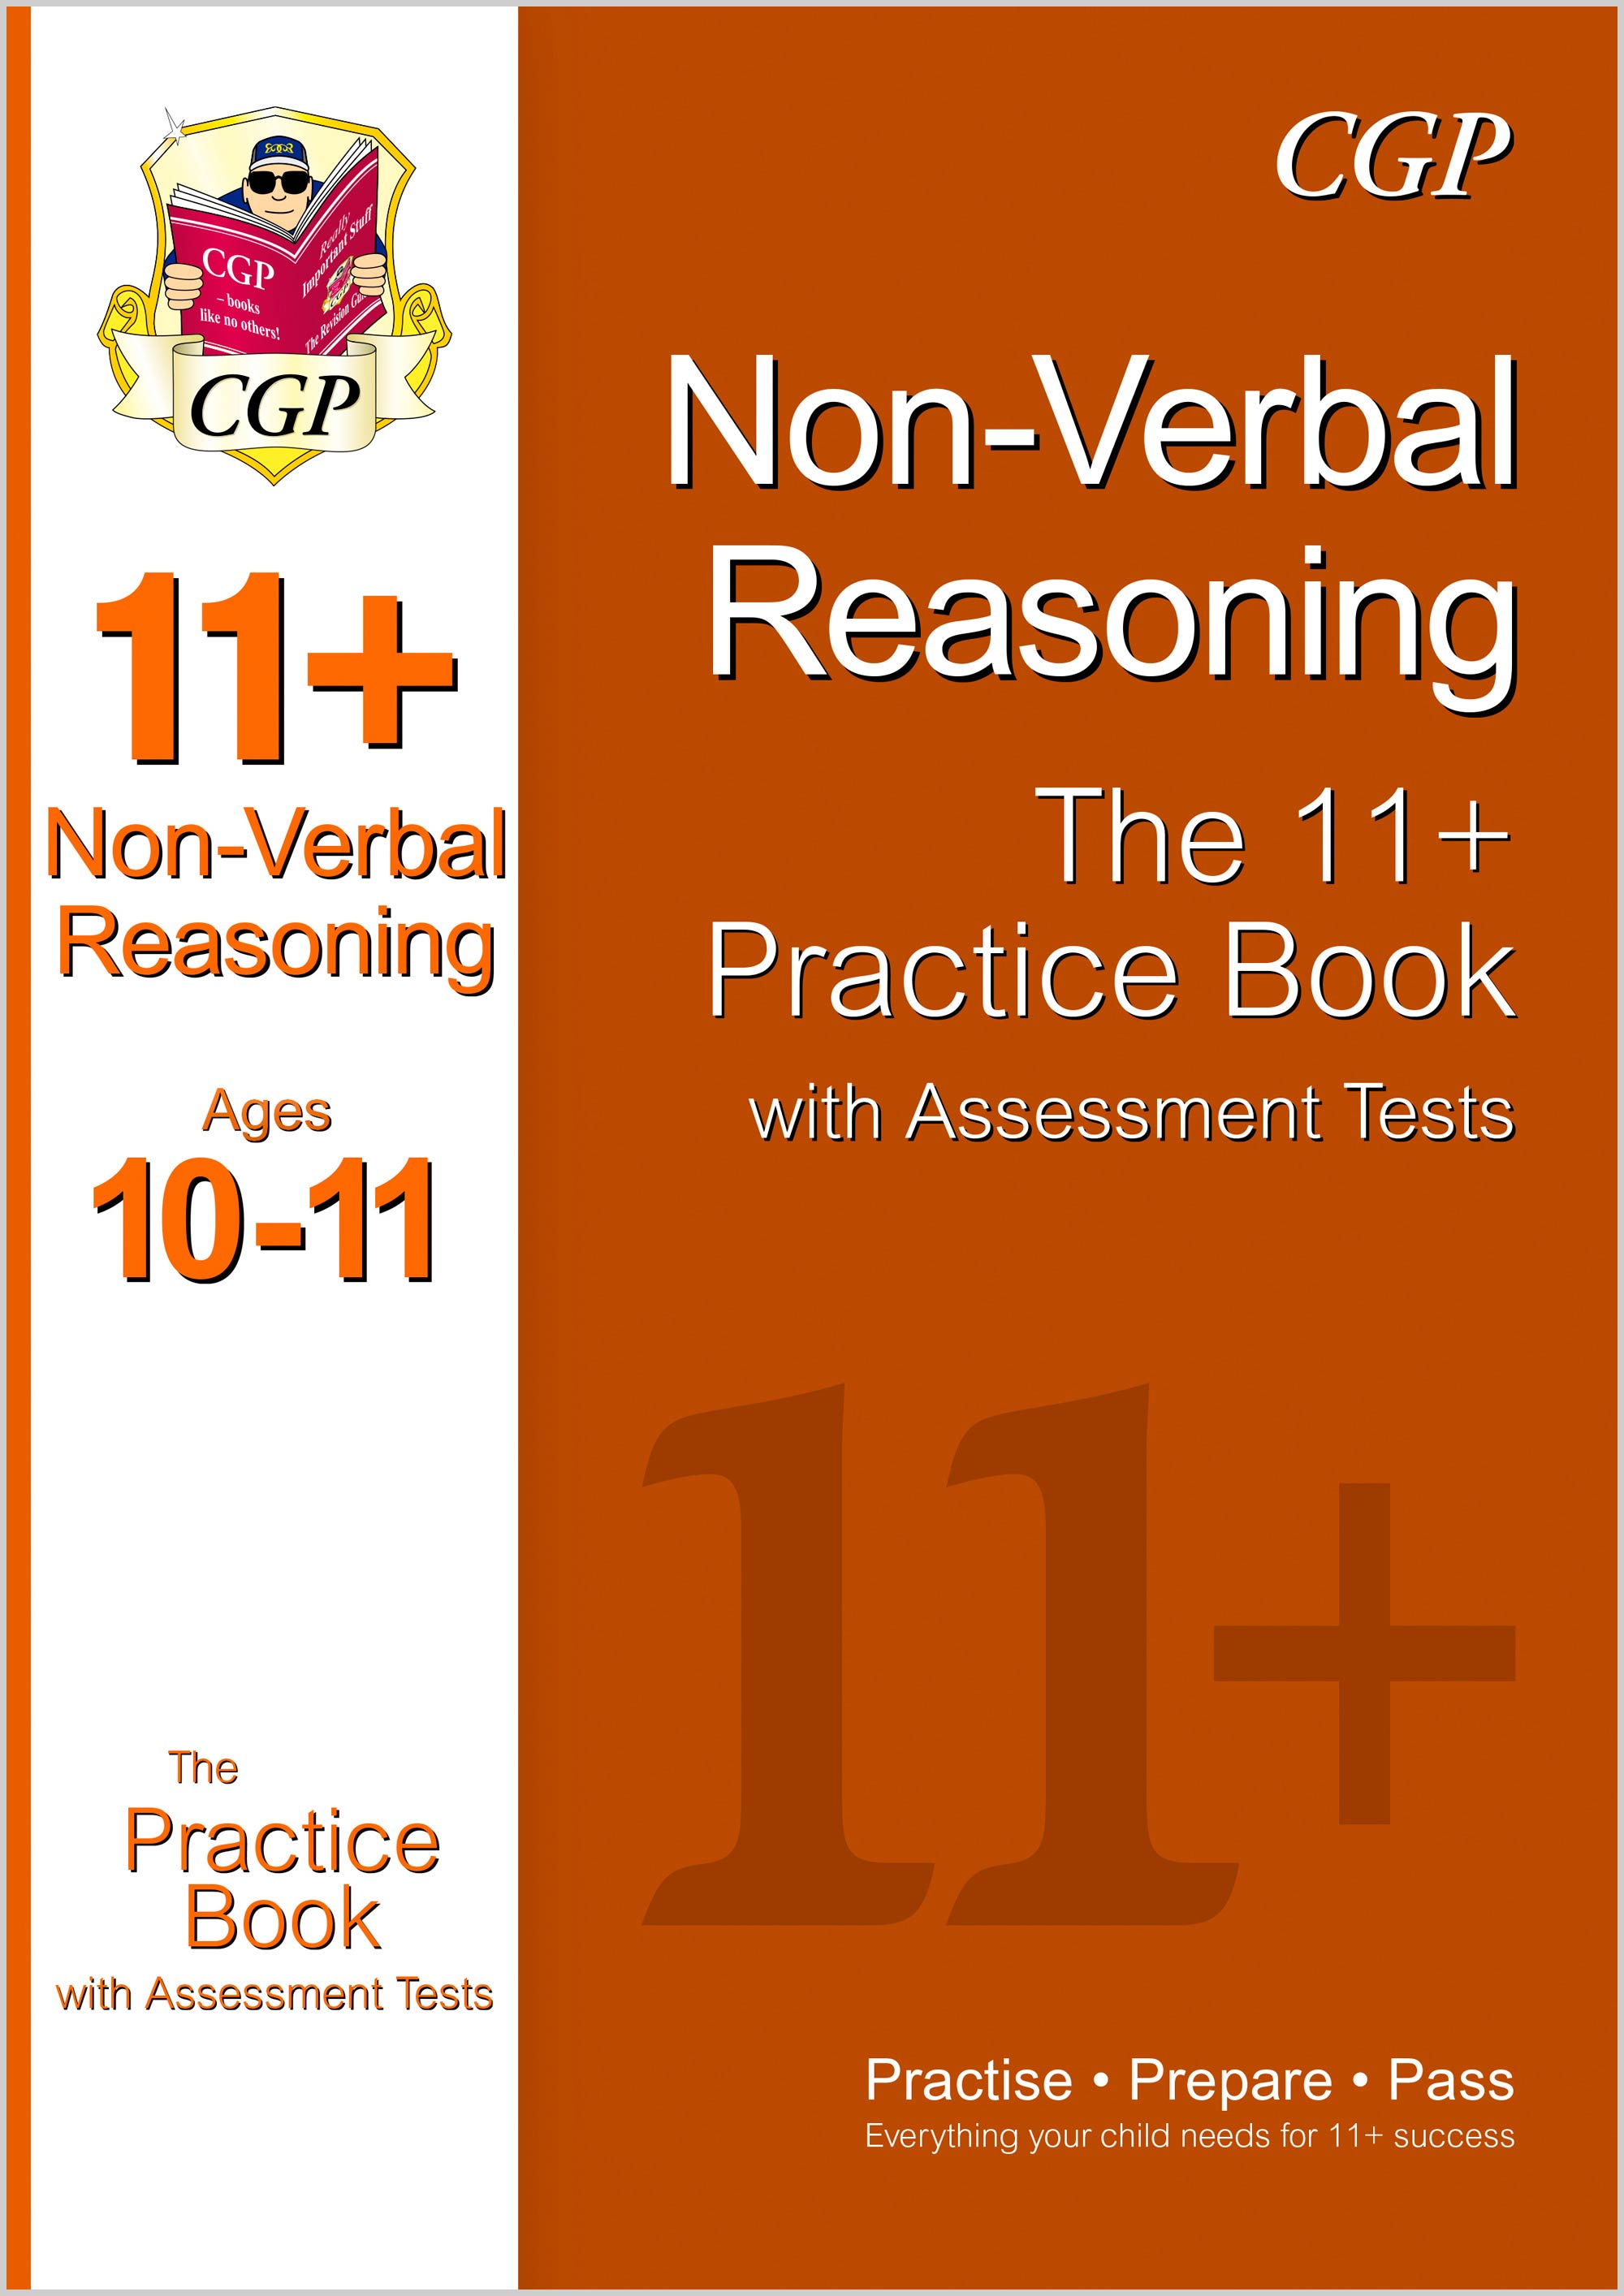 N6QE1DK - 11+ Non-Verbal Reasoning Practice Book with Assessment Tests Ages 10-11 (GL & Other Test P